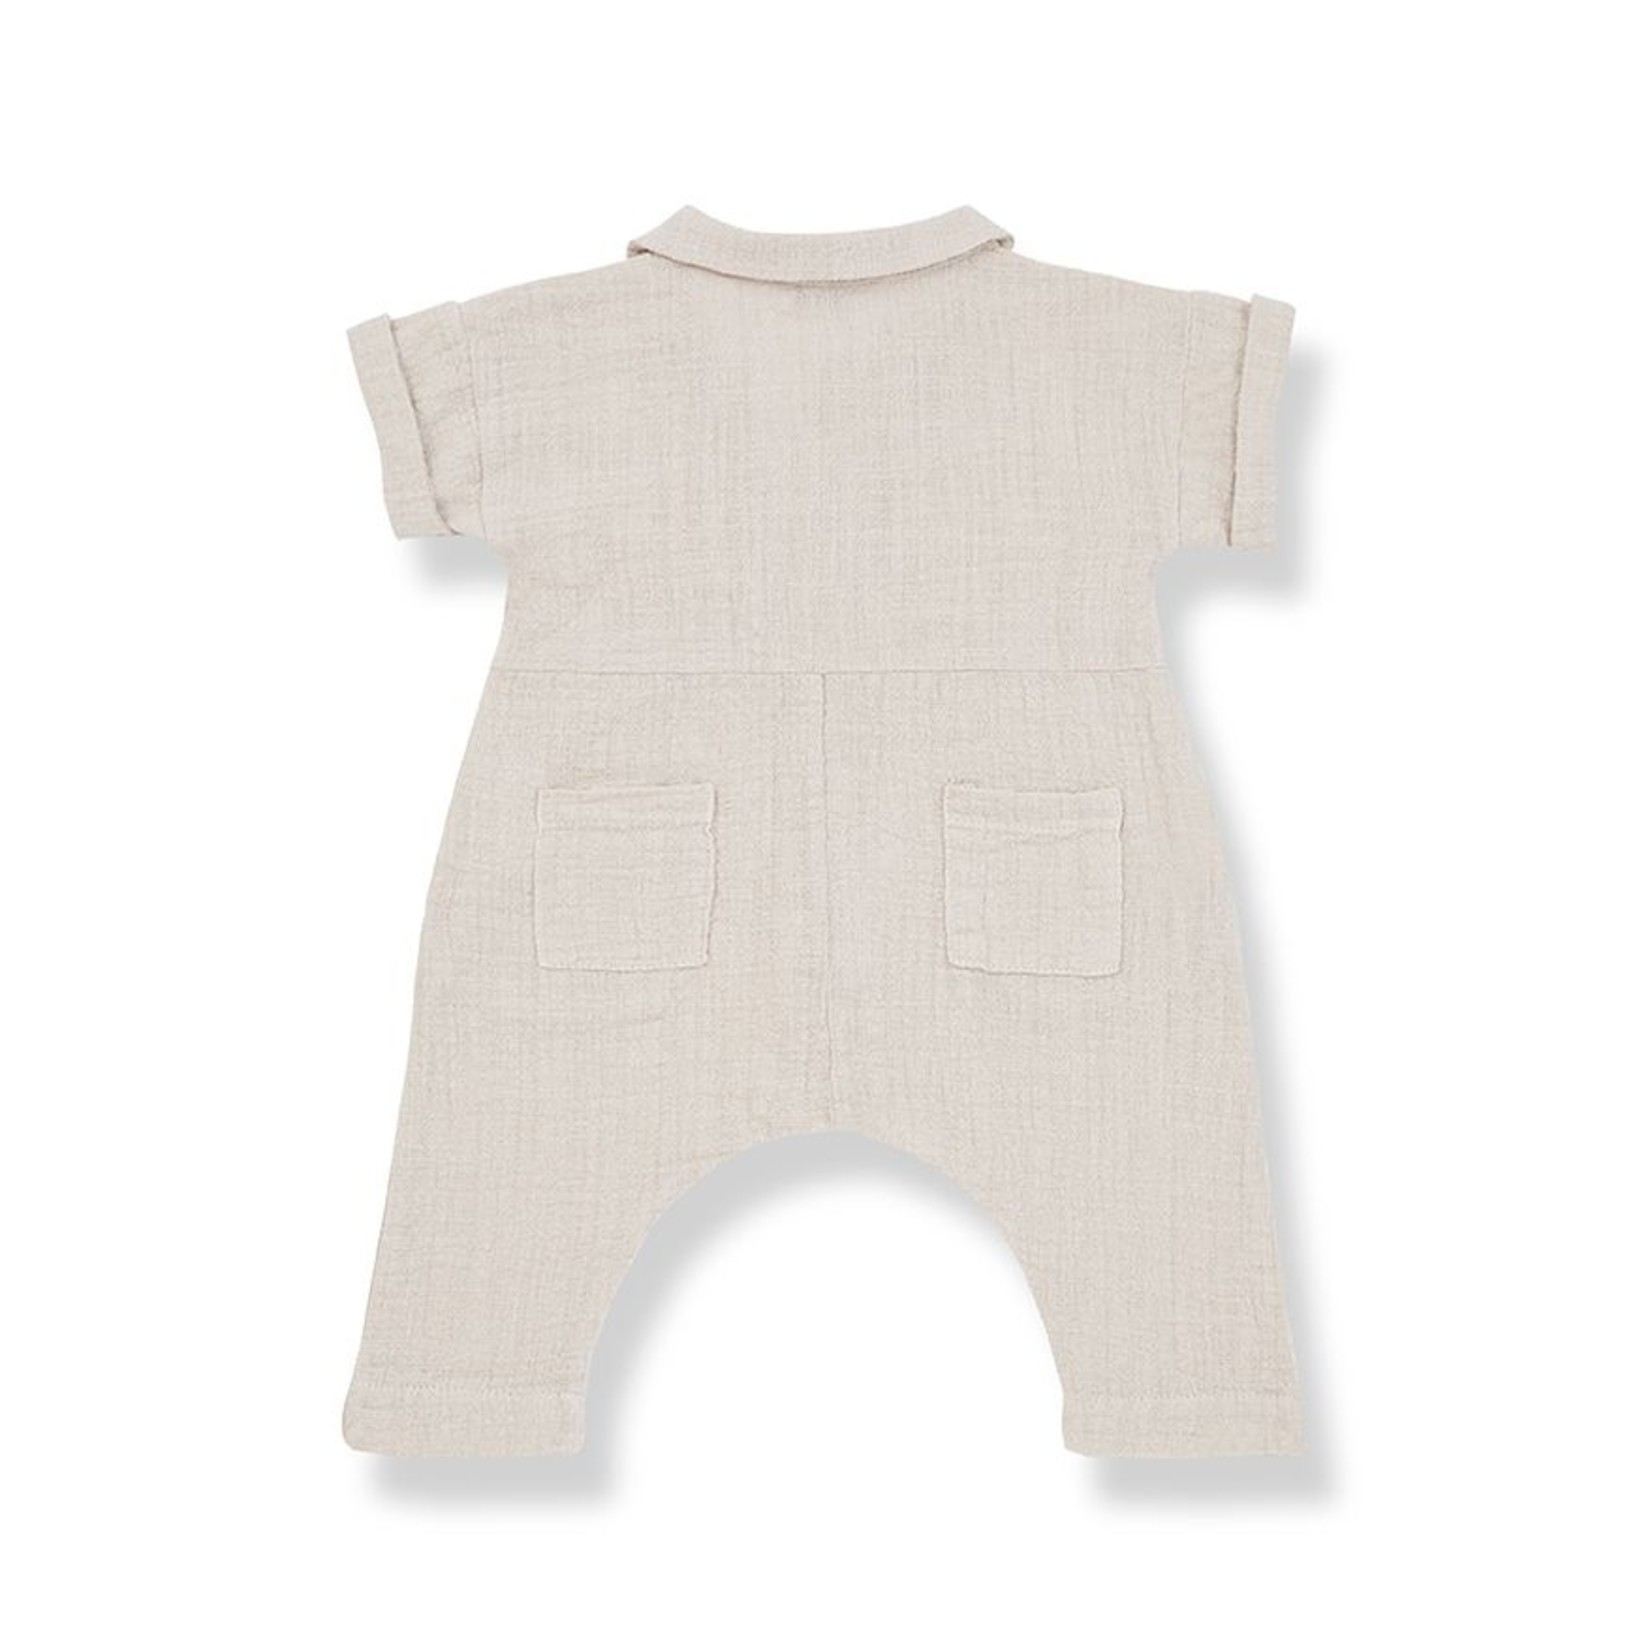 1+IN THE FAMILY 1 + IN THE FAMILY CARLOTA jumpsuit